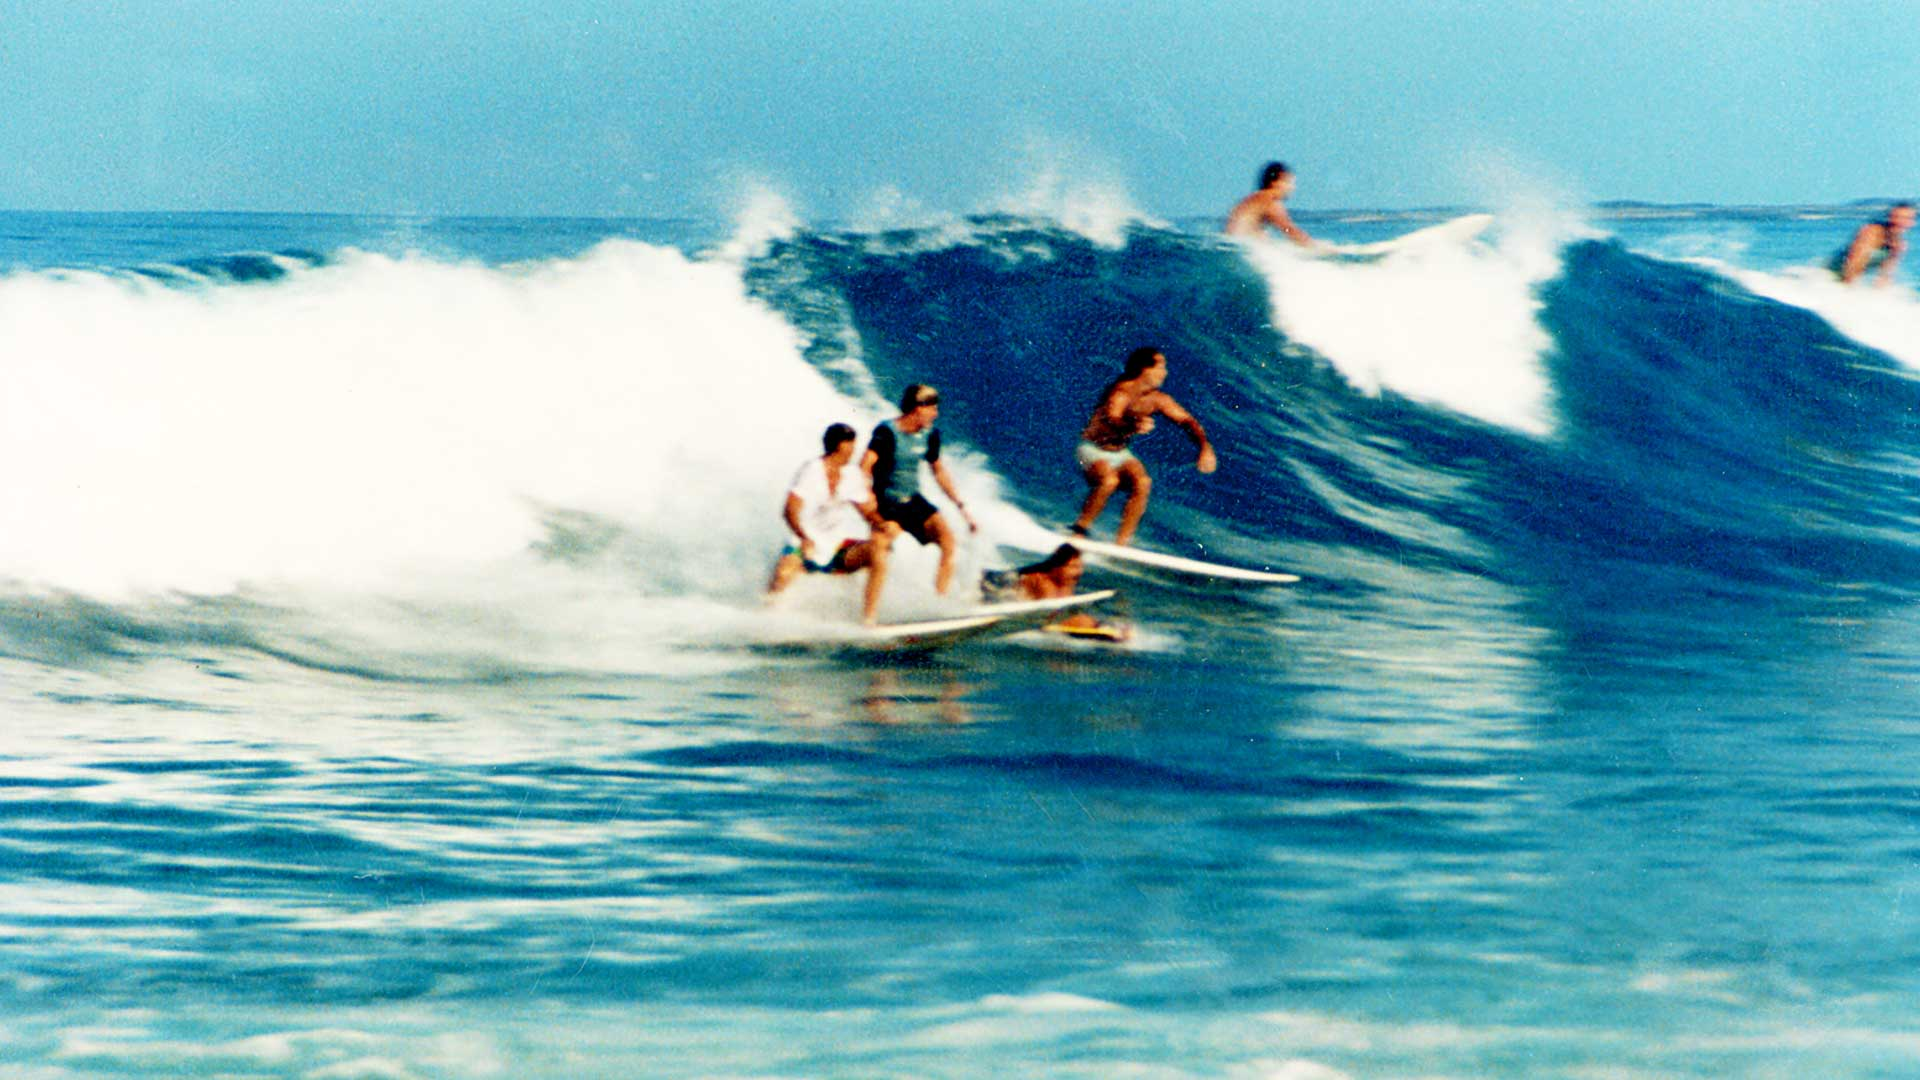 Steven Andrew Martin 1980s – Surfing at Lyman's Point, Kailua-Kona, Big Island